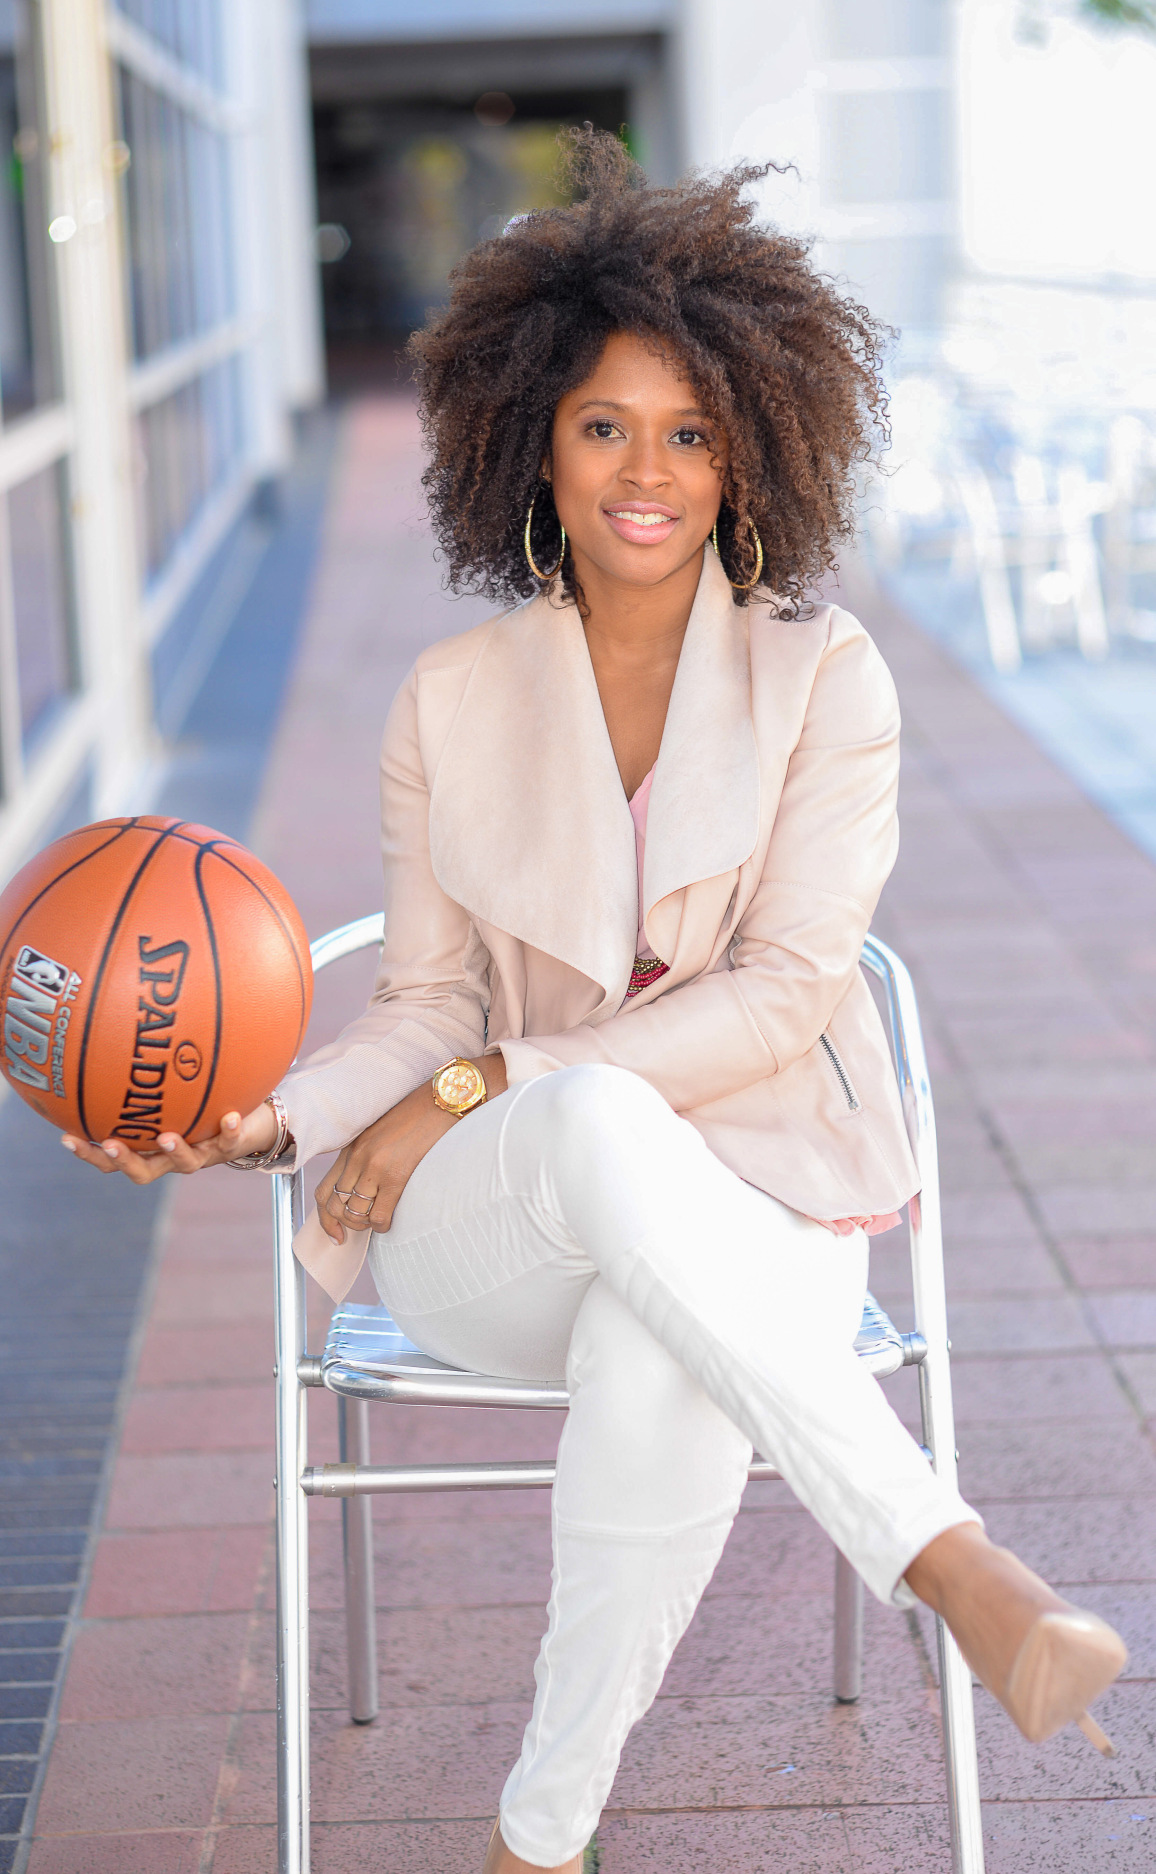 How one woman is breaking barriers in the sports industry